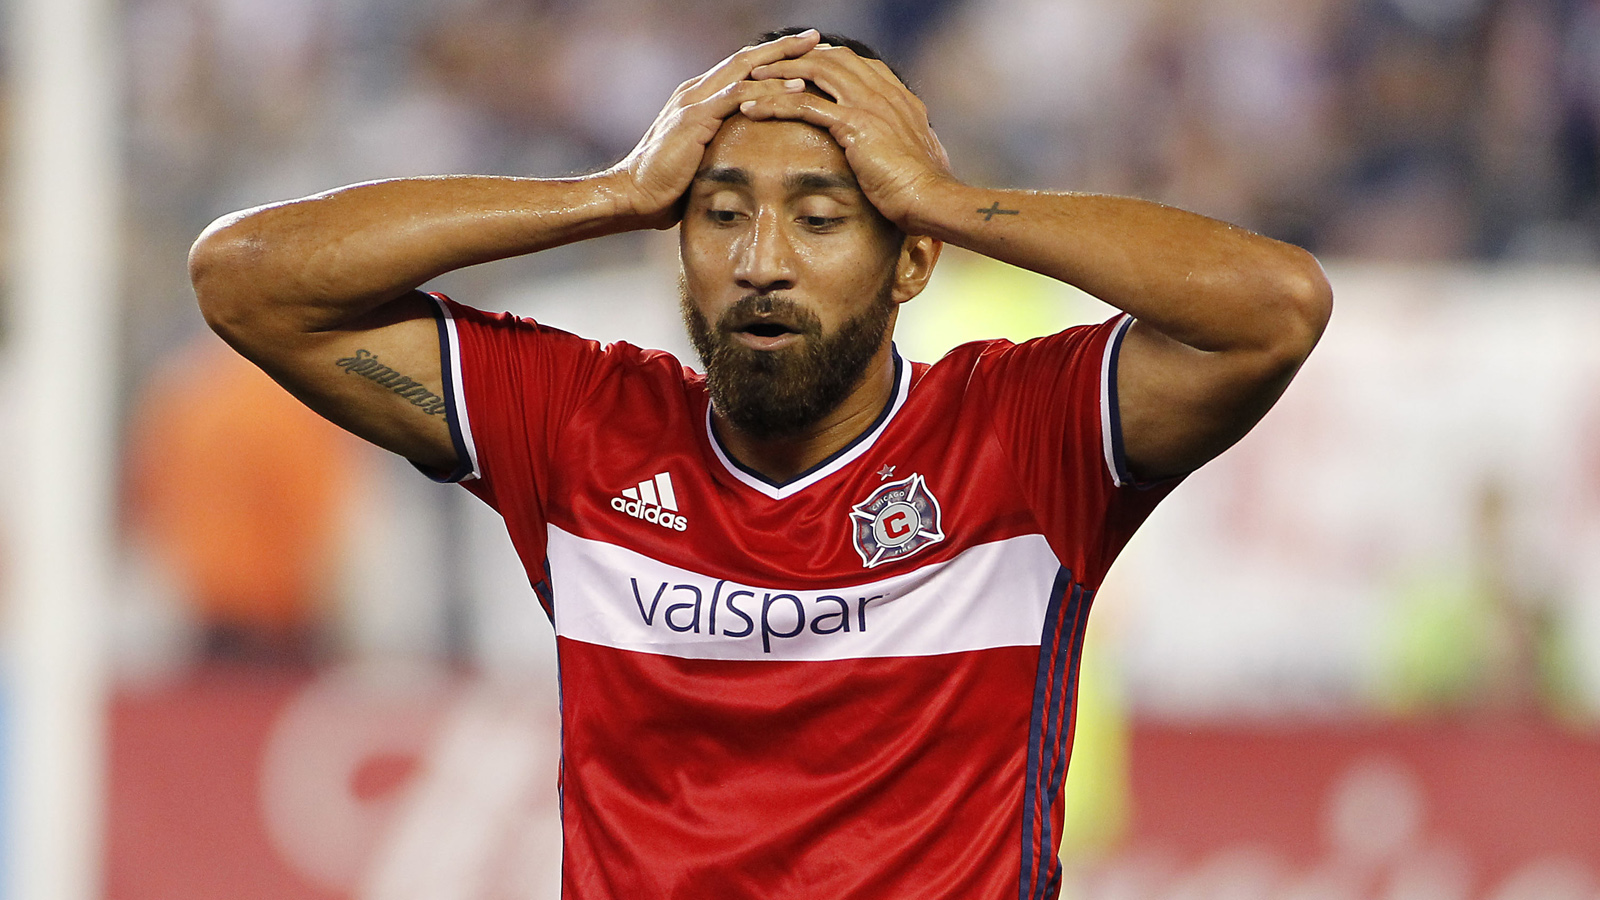 The Chicago Fire are terrible and desperately need to make big changes